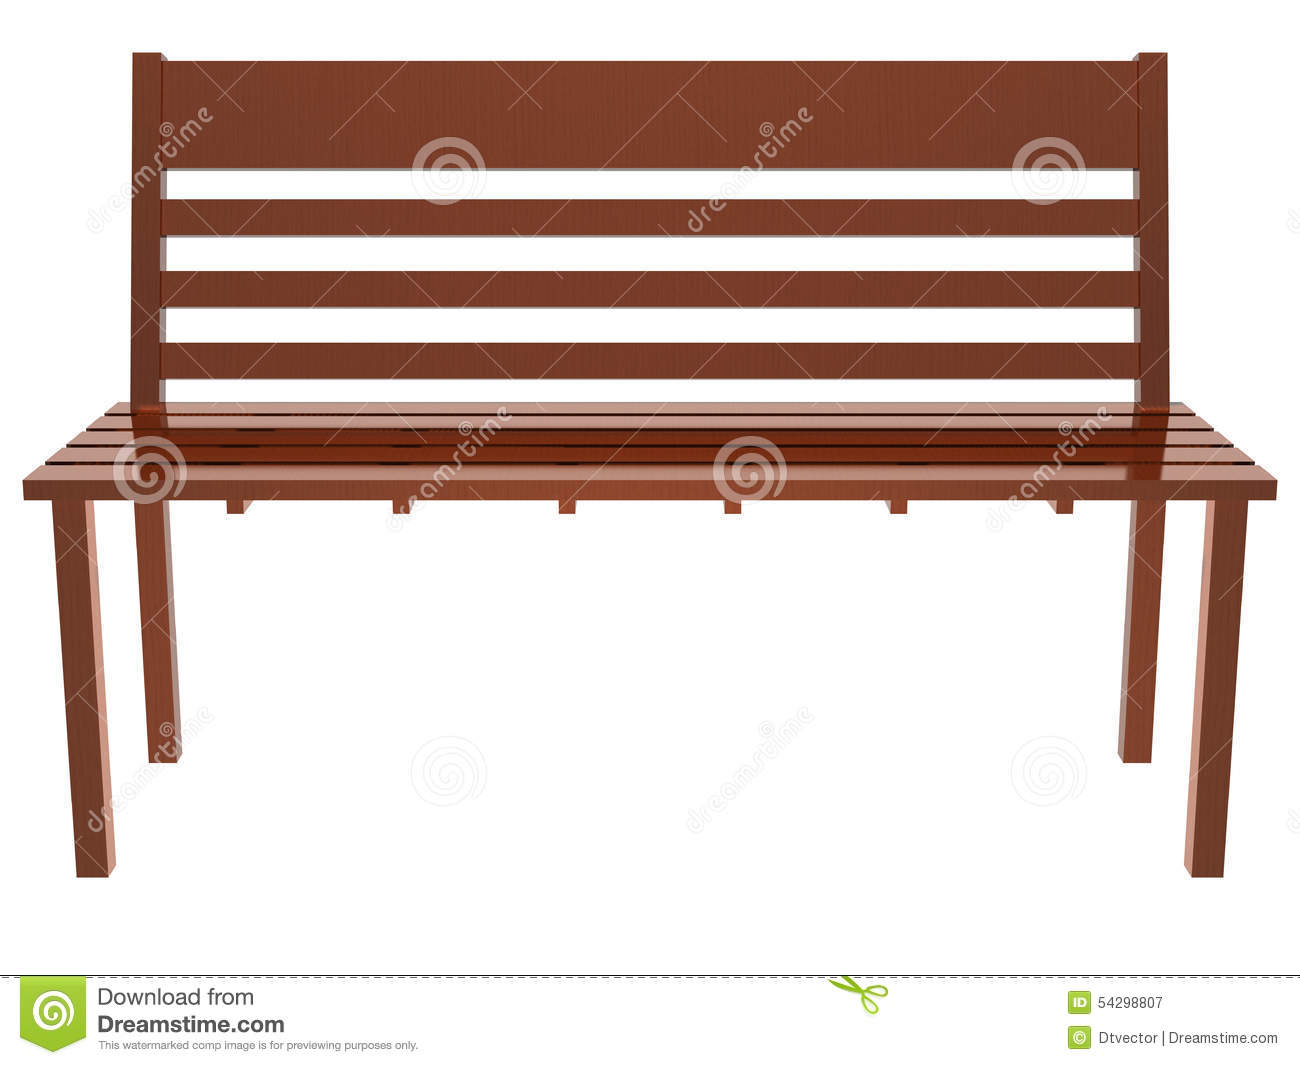 Wood Long Chair Stock Illustration - Image: 54298807